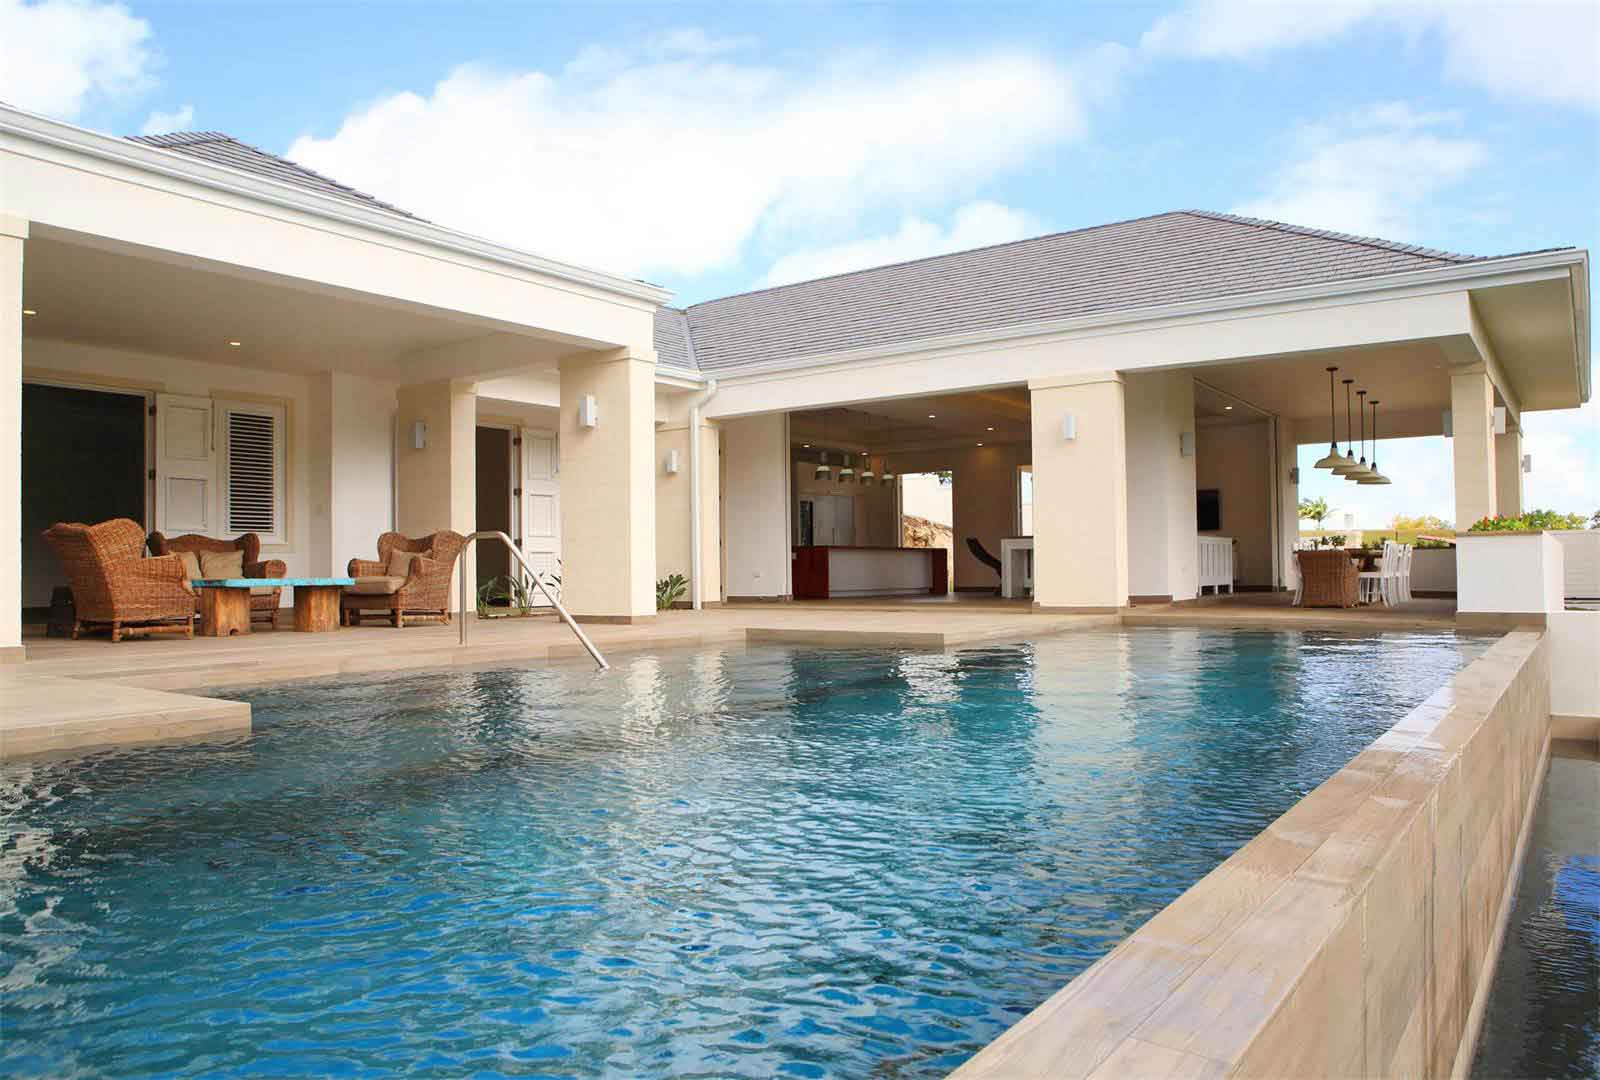 Sugar Water, a luxurious villa in Barbados's prestigious Apes Hill Club, incorporates some of the most progressive solar equipment available on today's market.